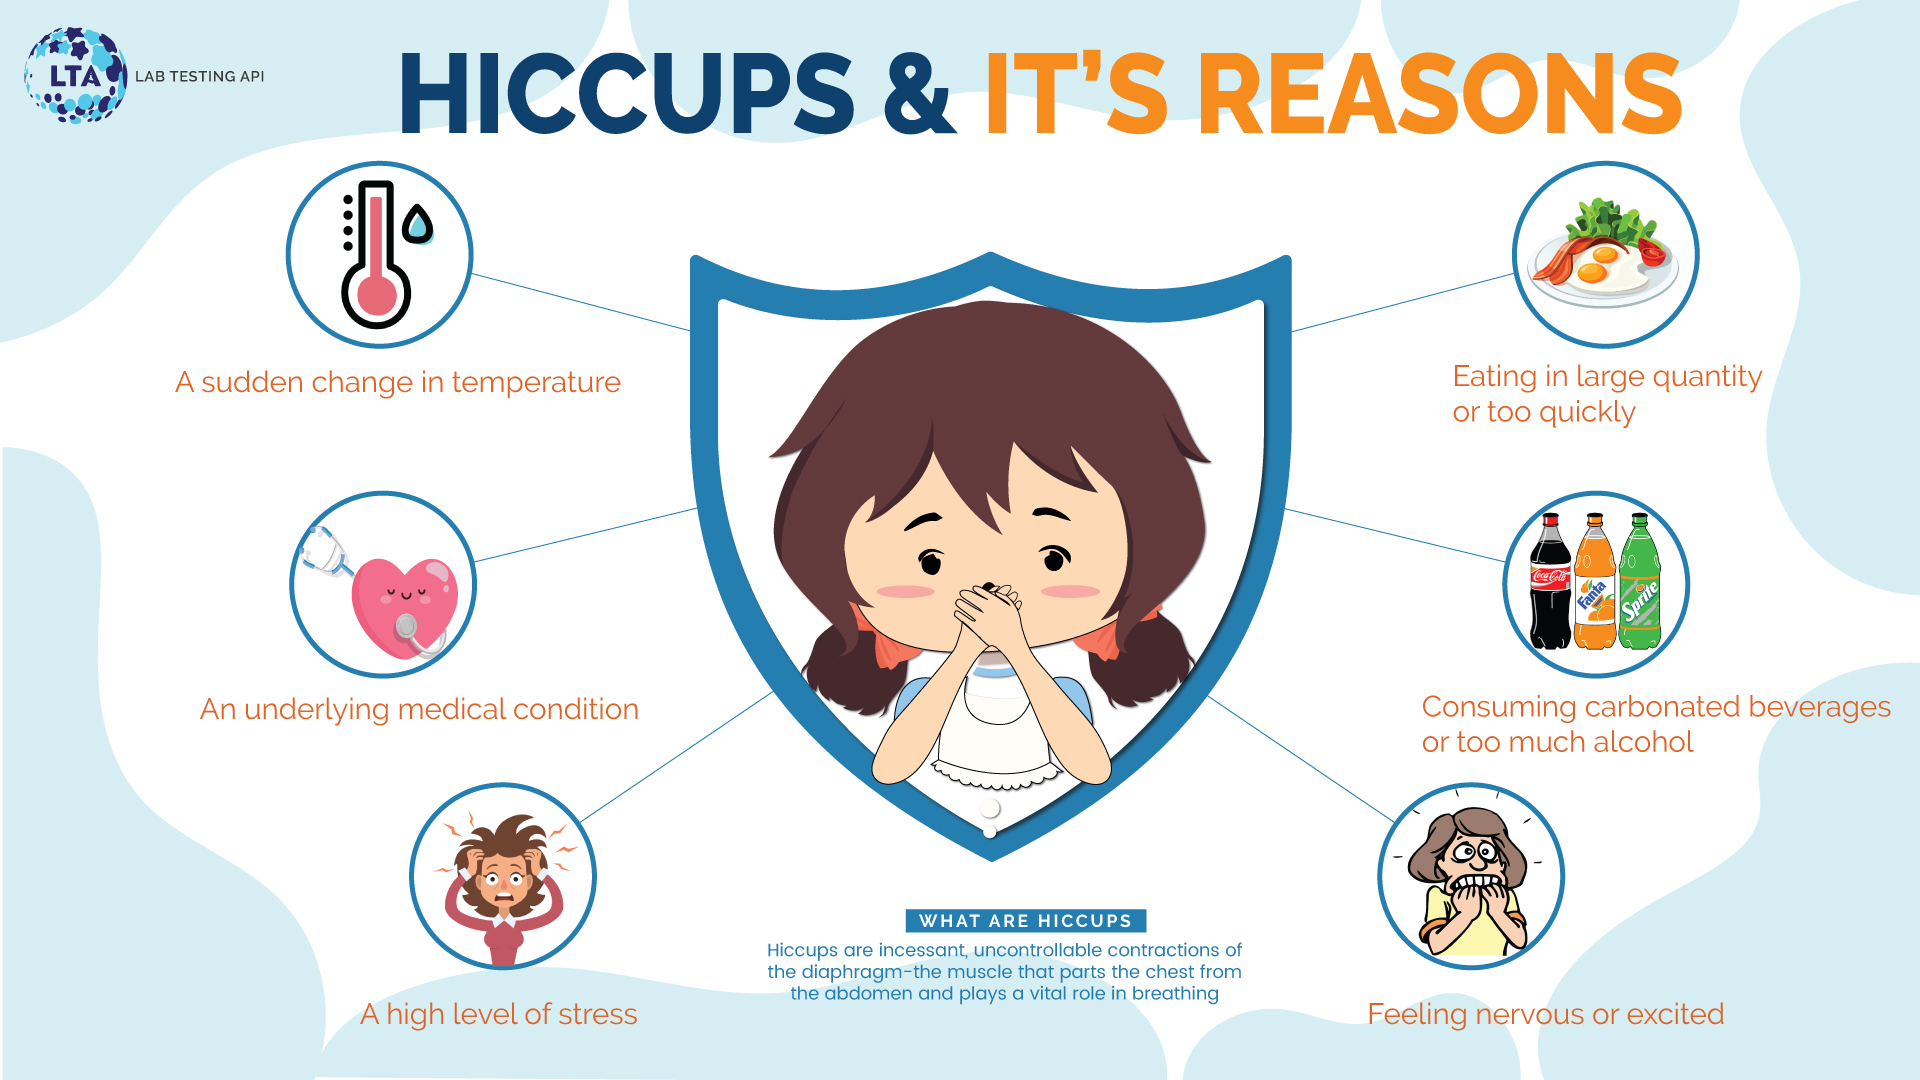 Hiccups: The bizarre sounds escaping your mouth without warning